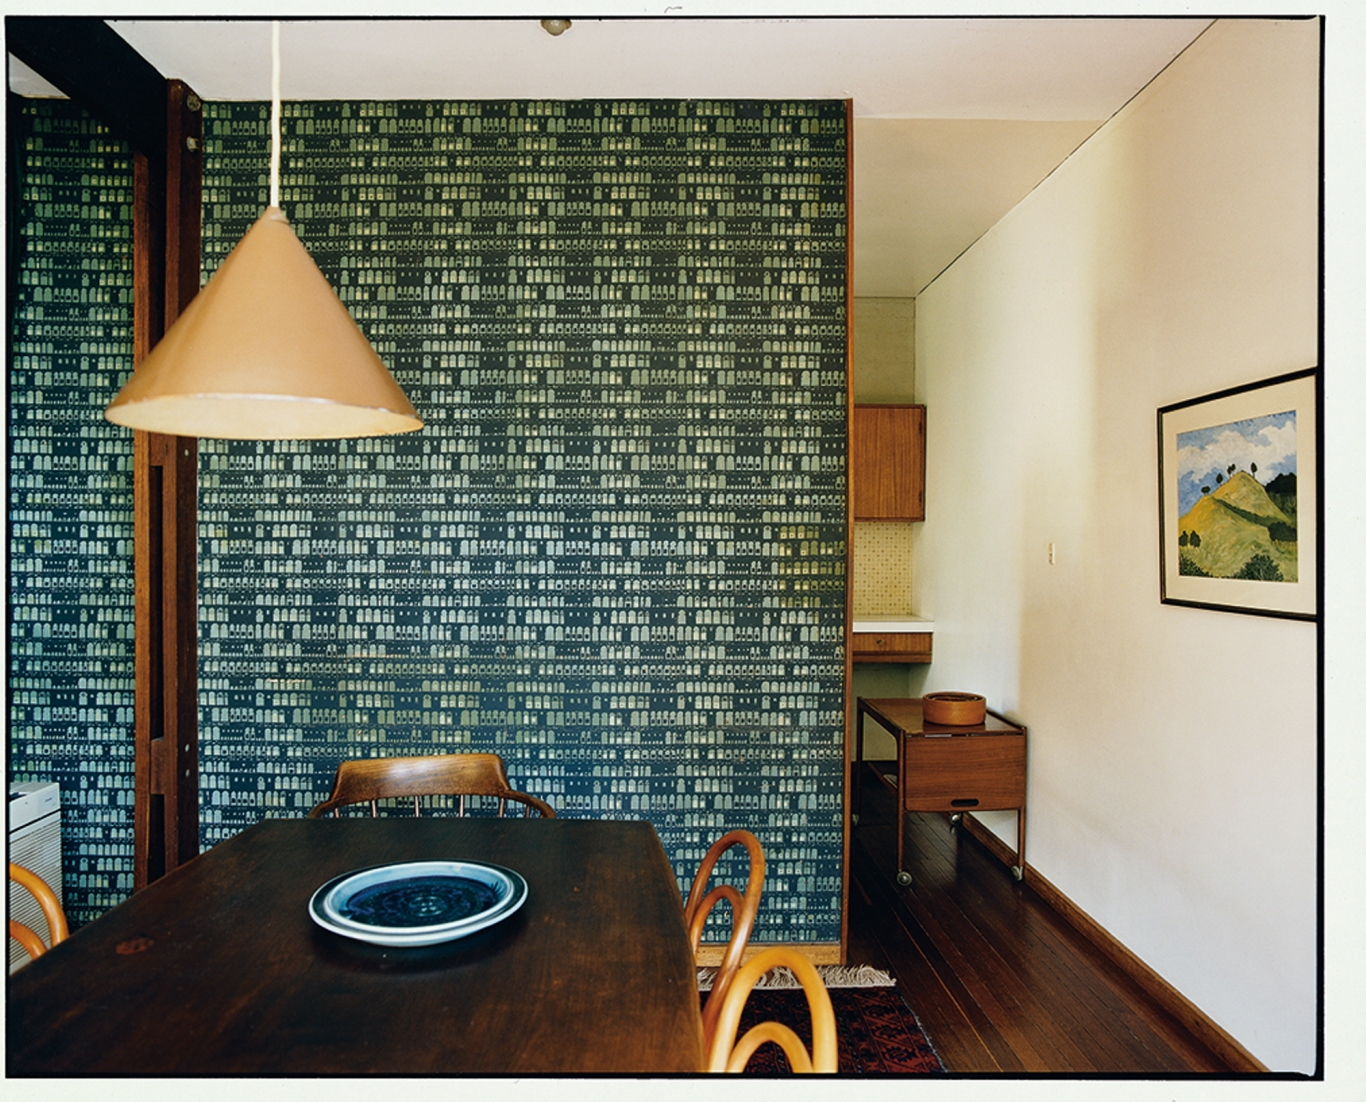 This is a photograph of a pendant light hanging over a dark timber dining table with a patterned wallpaper in the background